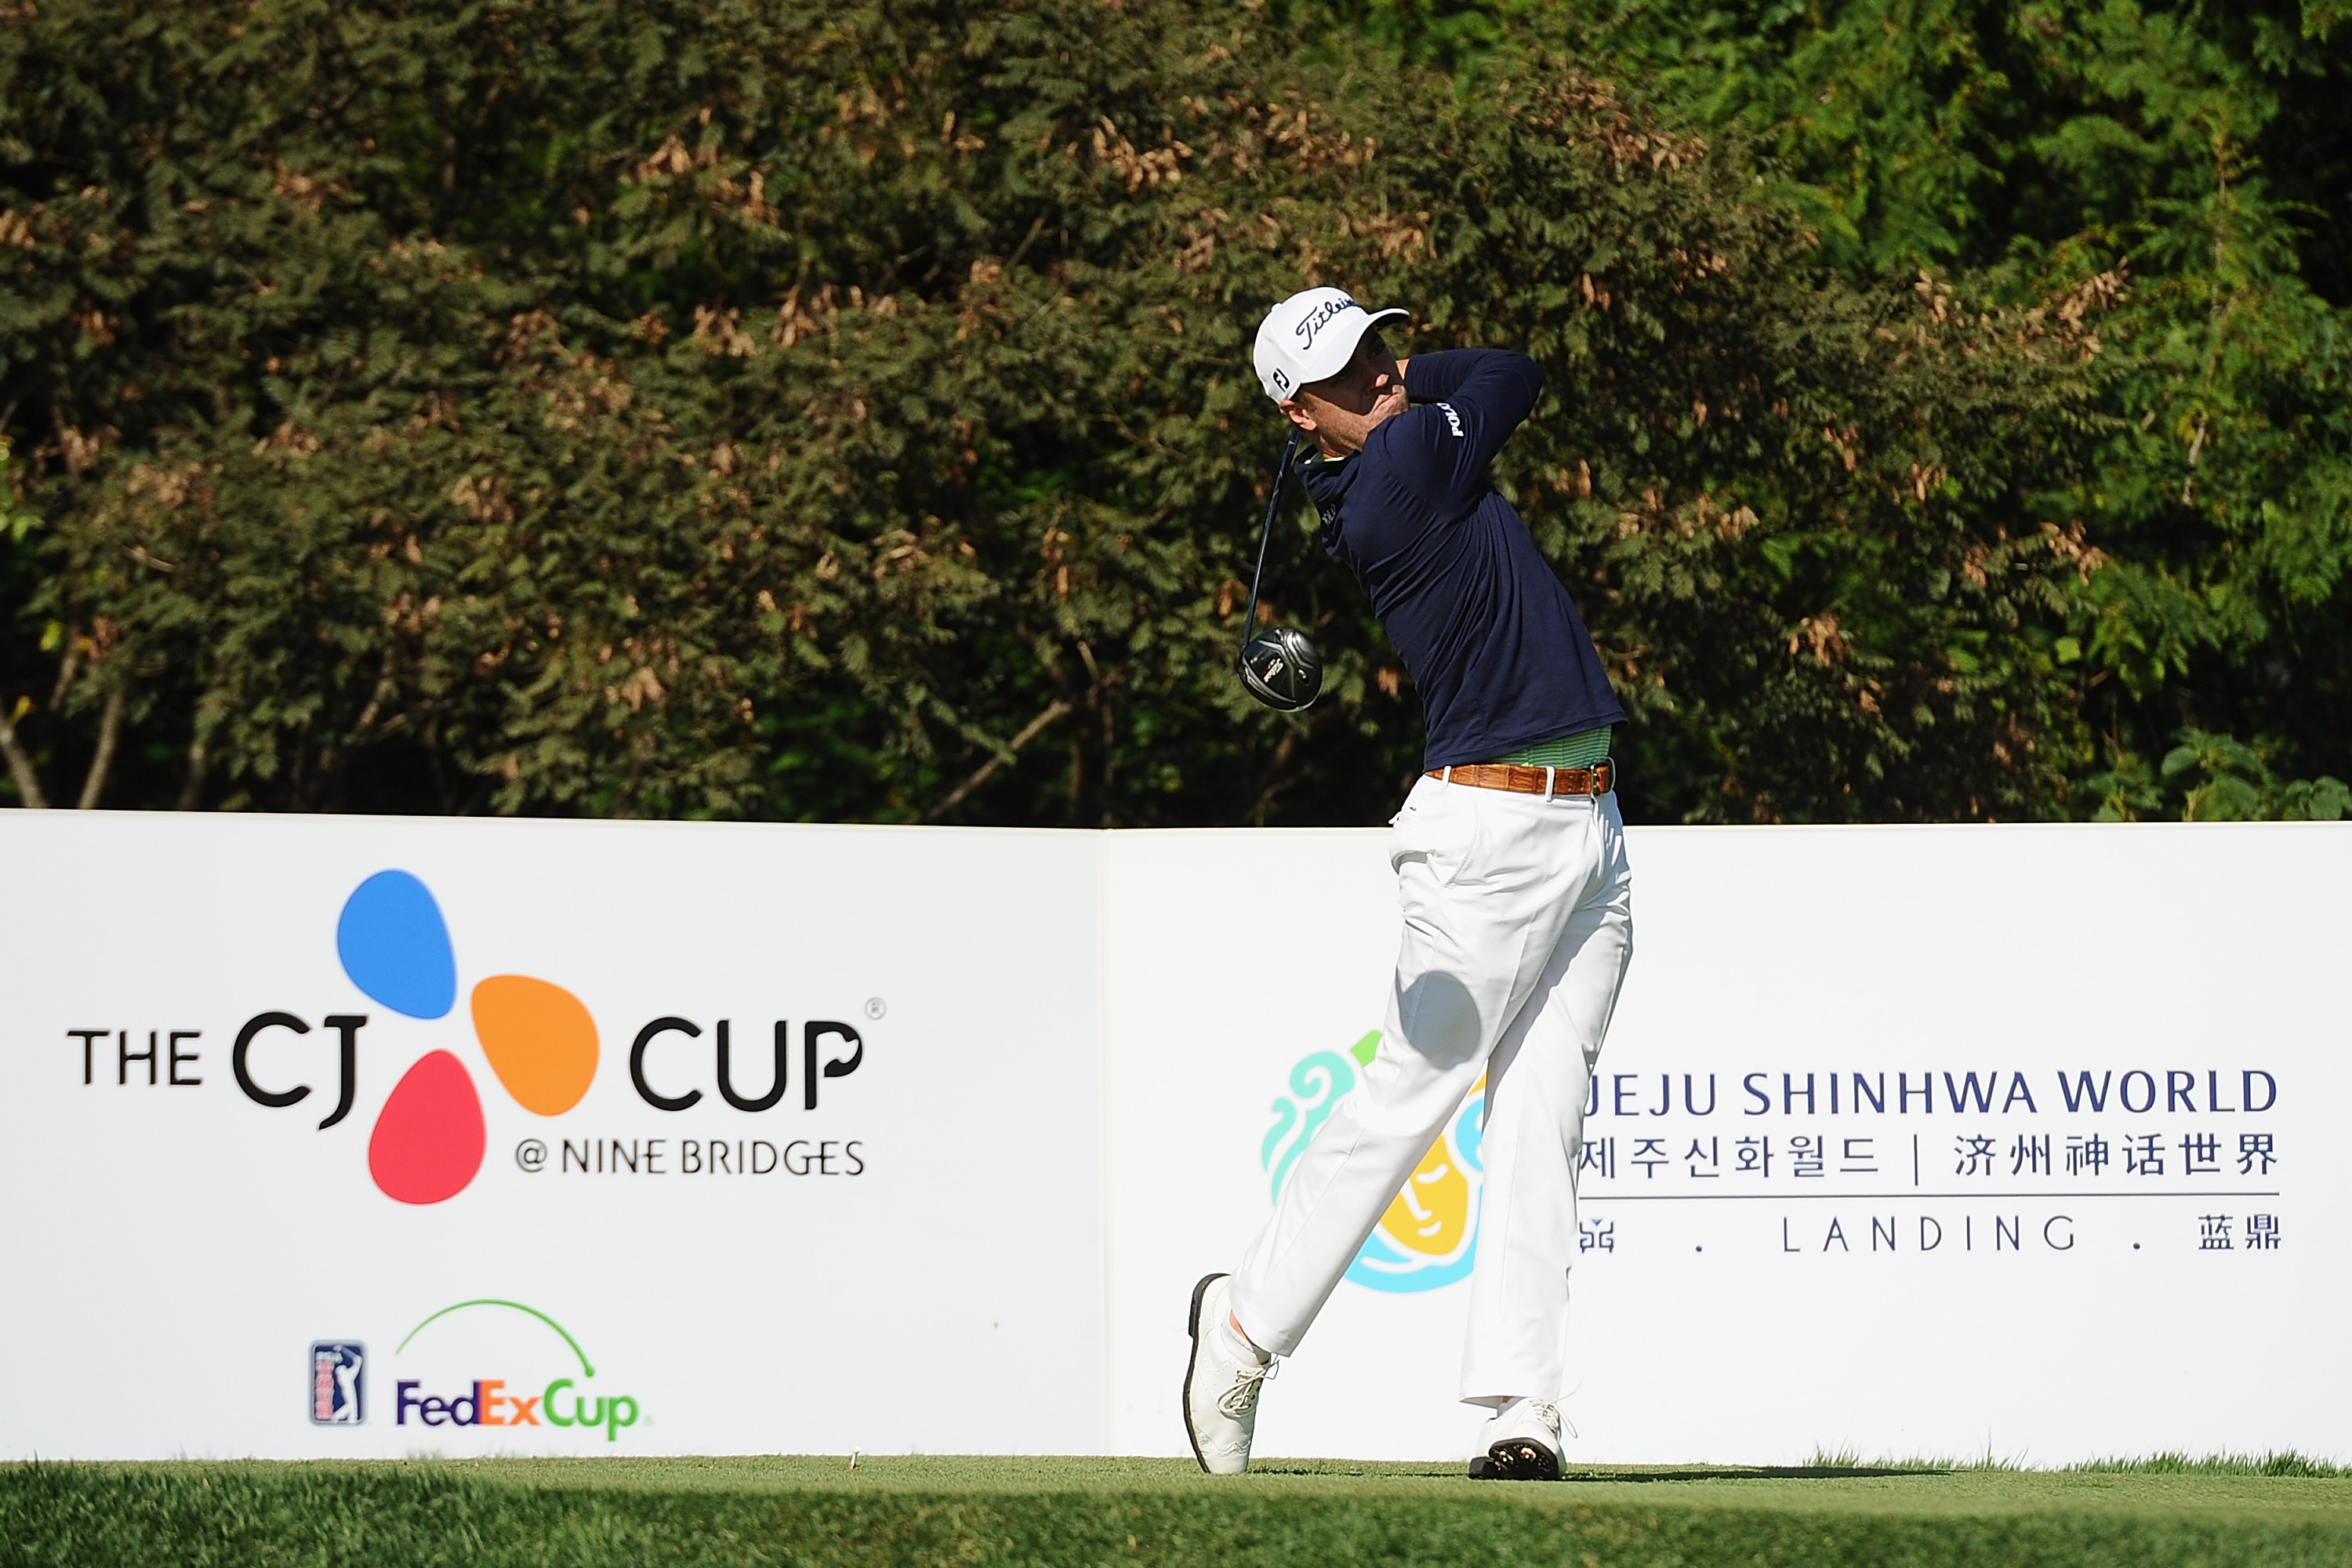 JEJU, SOUTH KOREA - OCTOBER 20: Justin Thomas of the United States hits his tee shot on the 3rd hole during the second round of the CJ Cup at Nine Bridges on October 20, 2017 in Jeju, South Korea. (Photo by Matt Roberts/Getty Images)